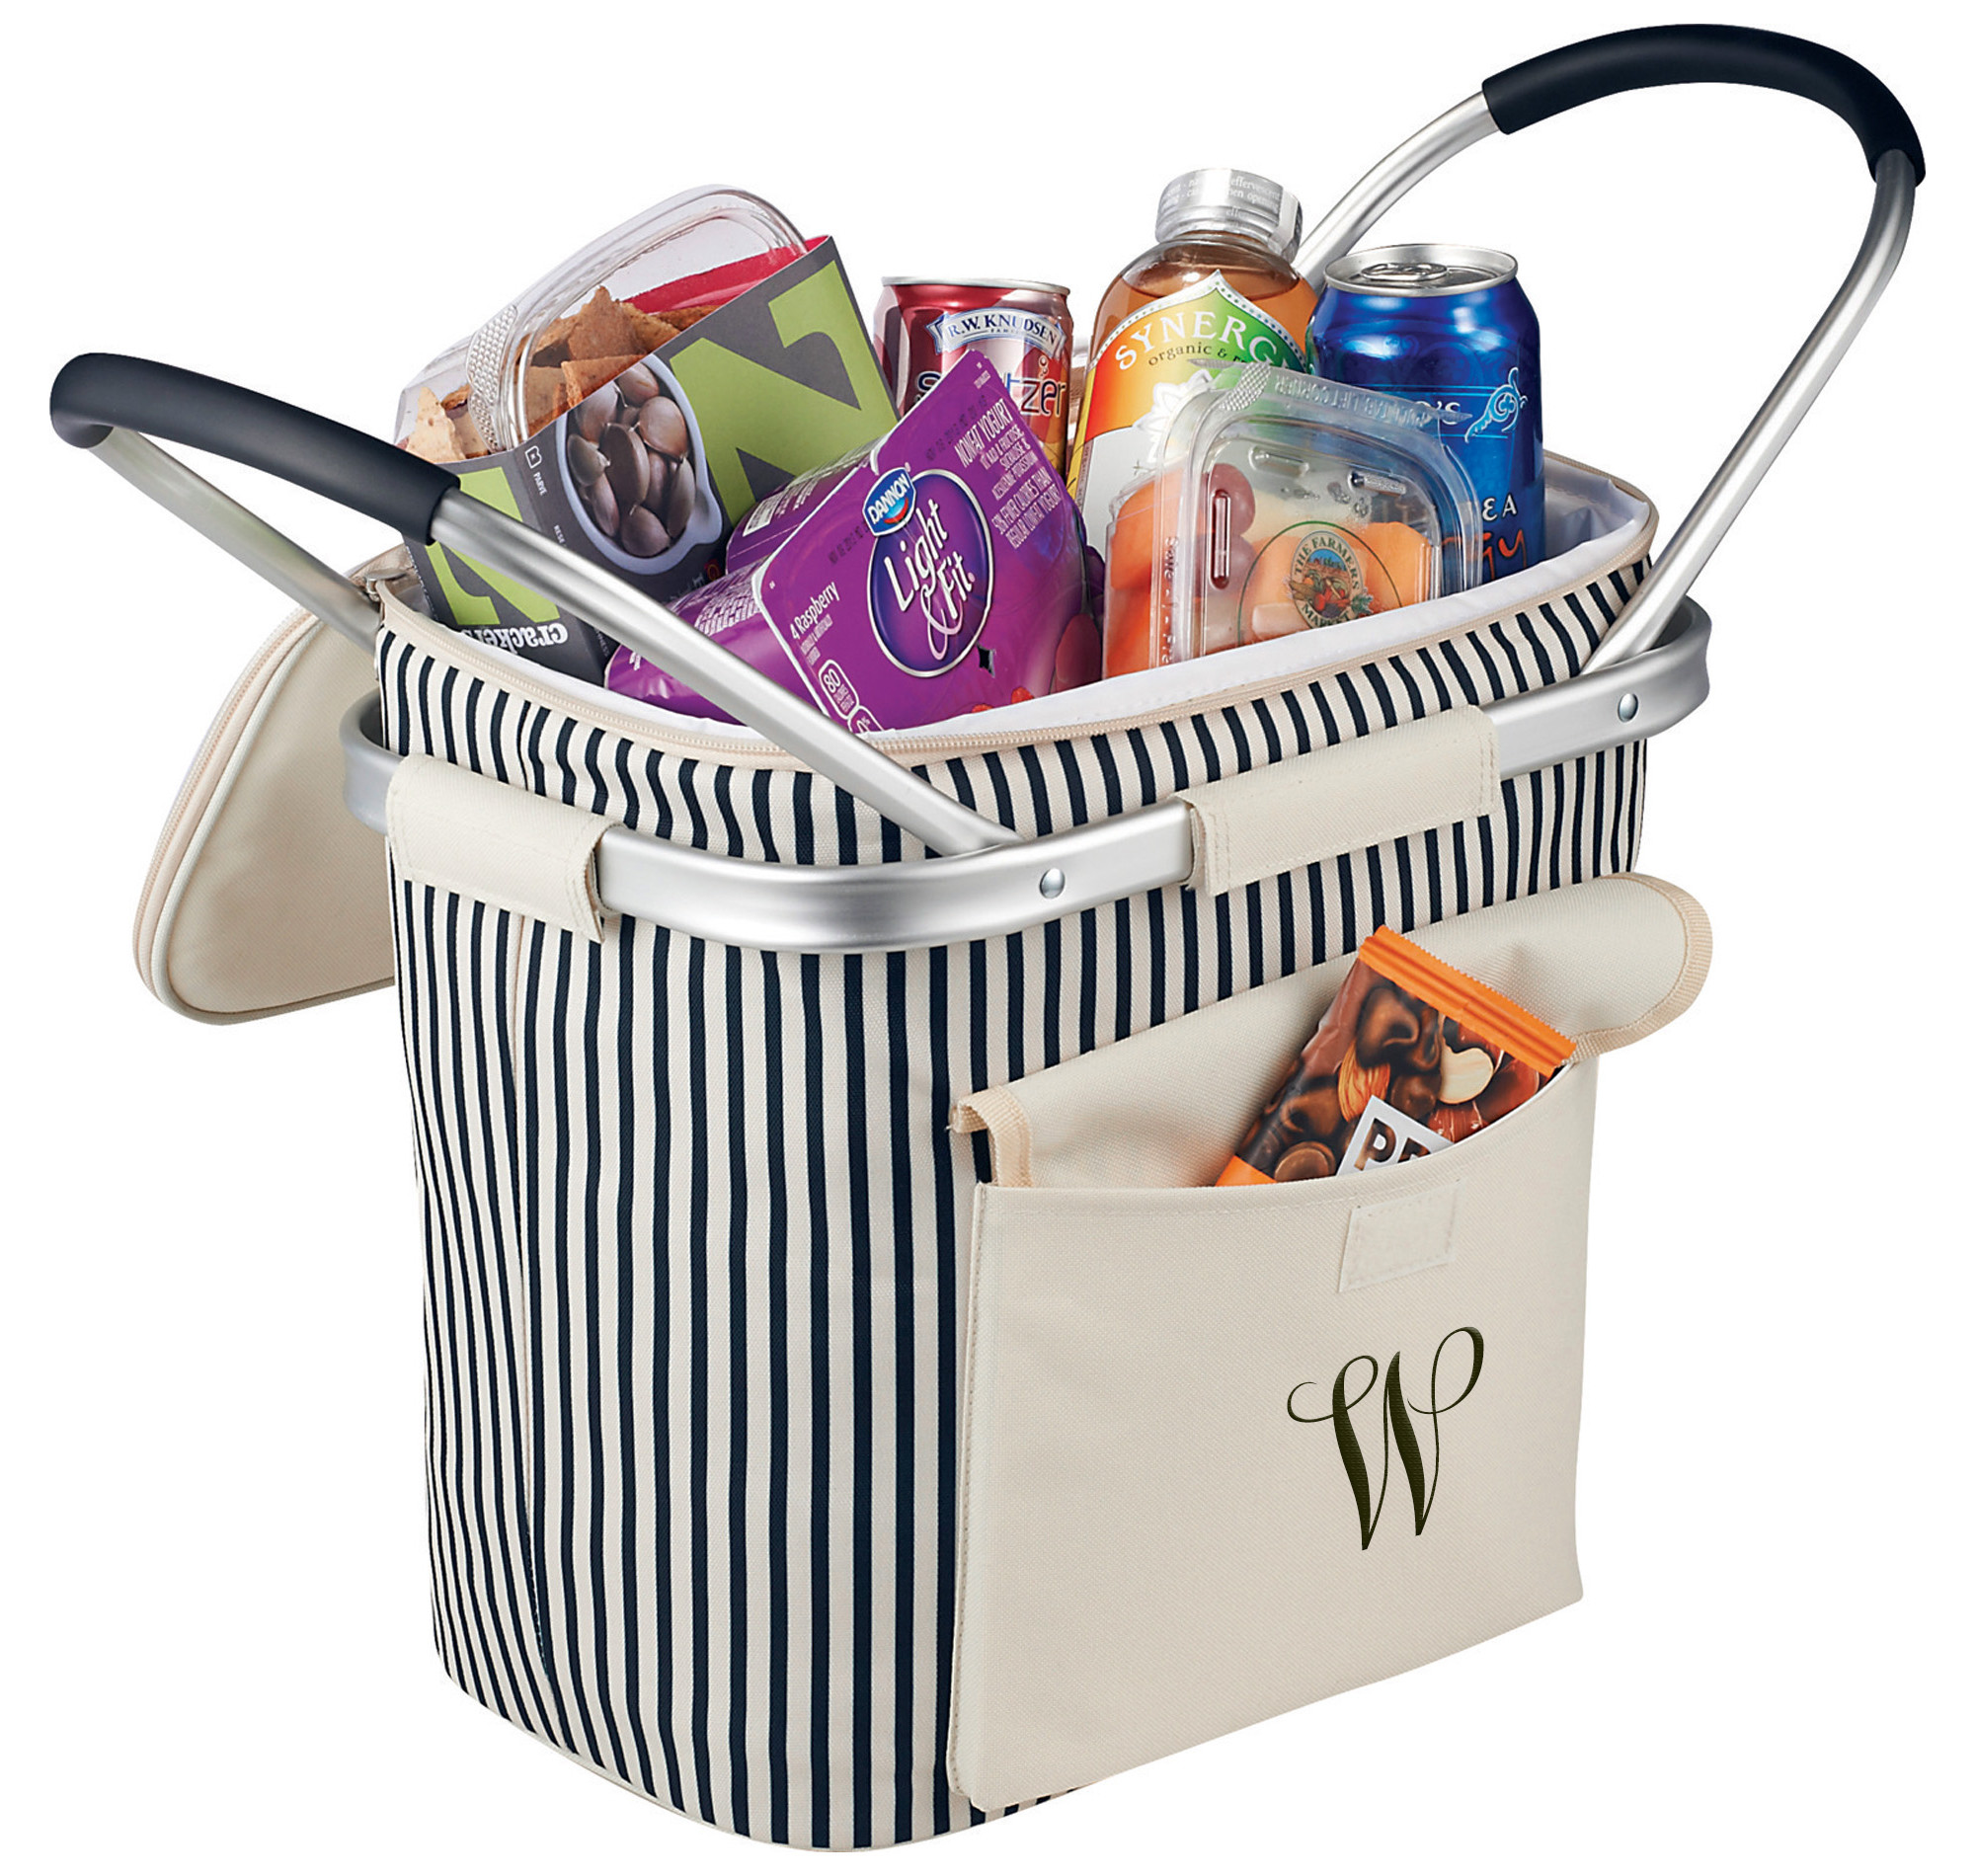 Collapsible Striped Picnic Basket Cooler with Double Aluminum Handles